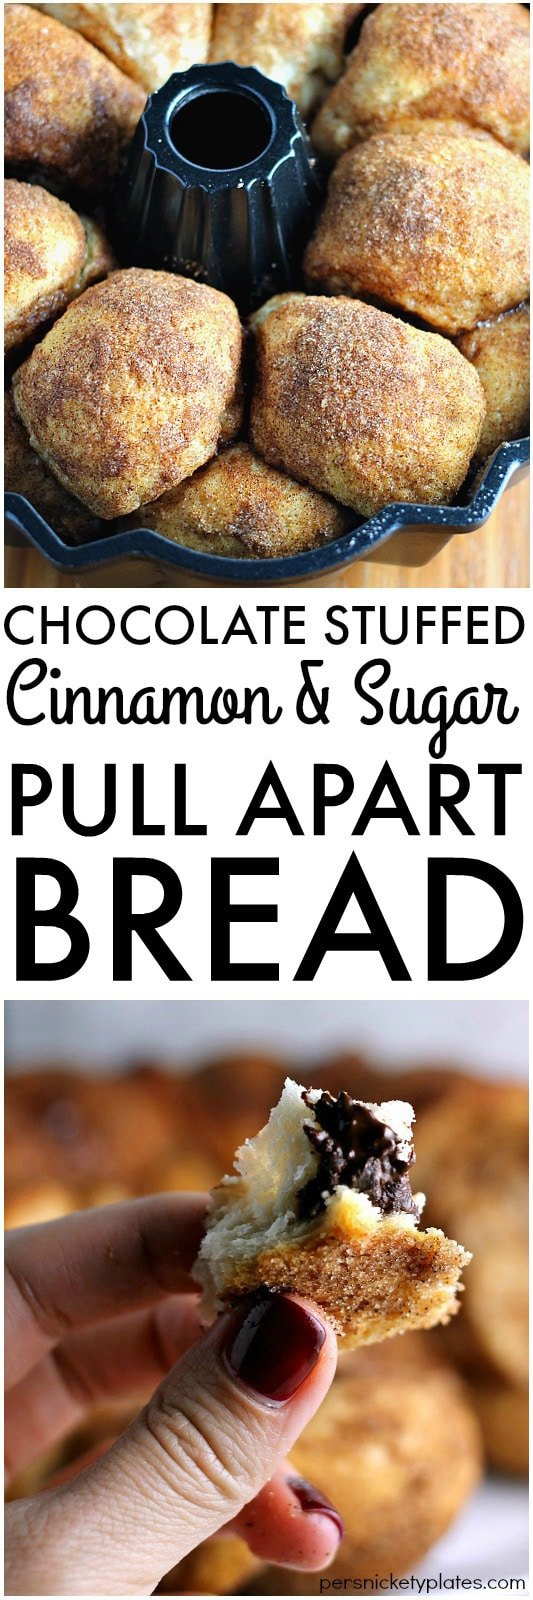 Chocolate Stuffed Cinnamon & Sugar Pull-Apart Bread ...